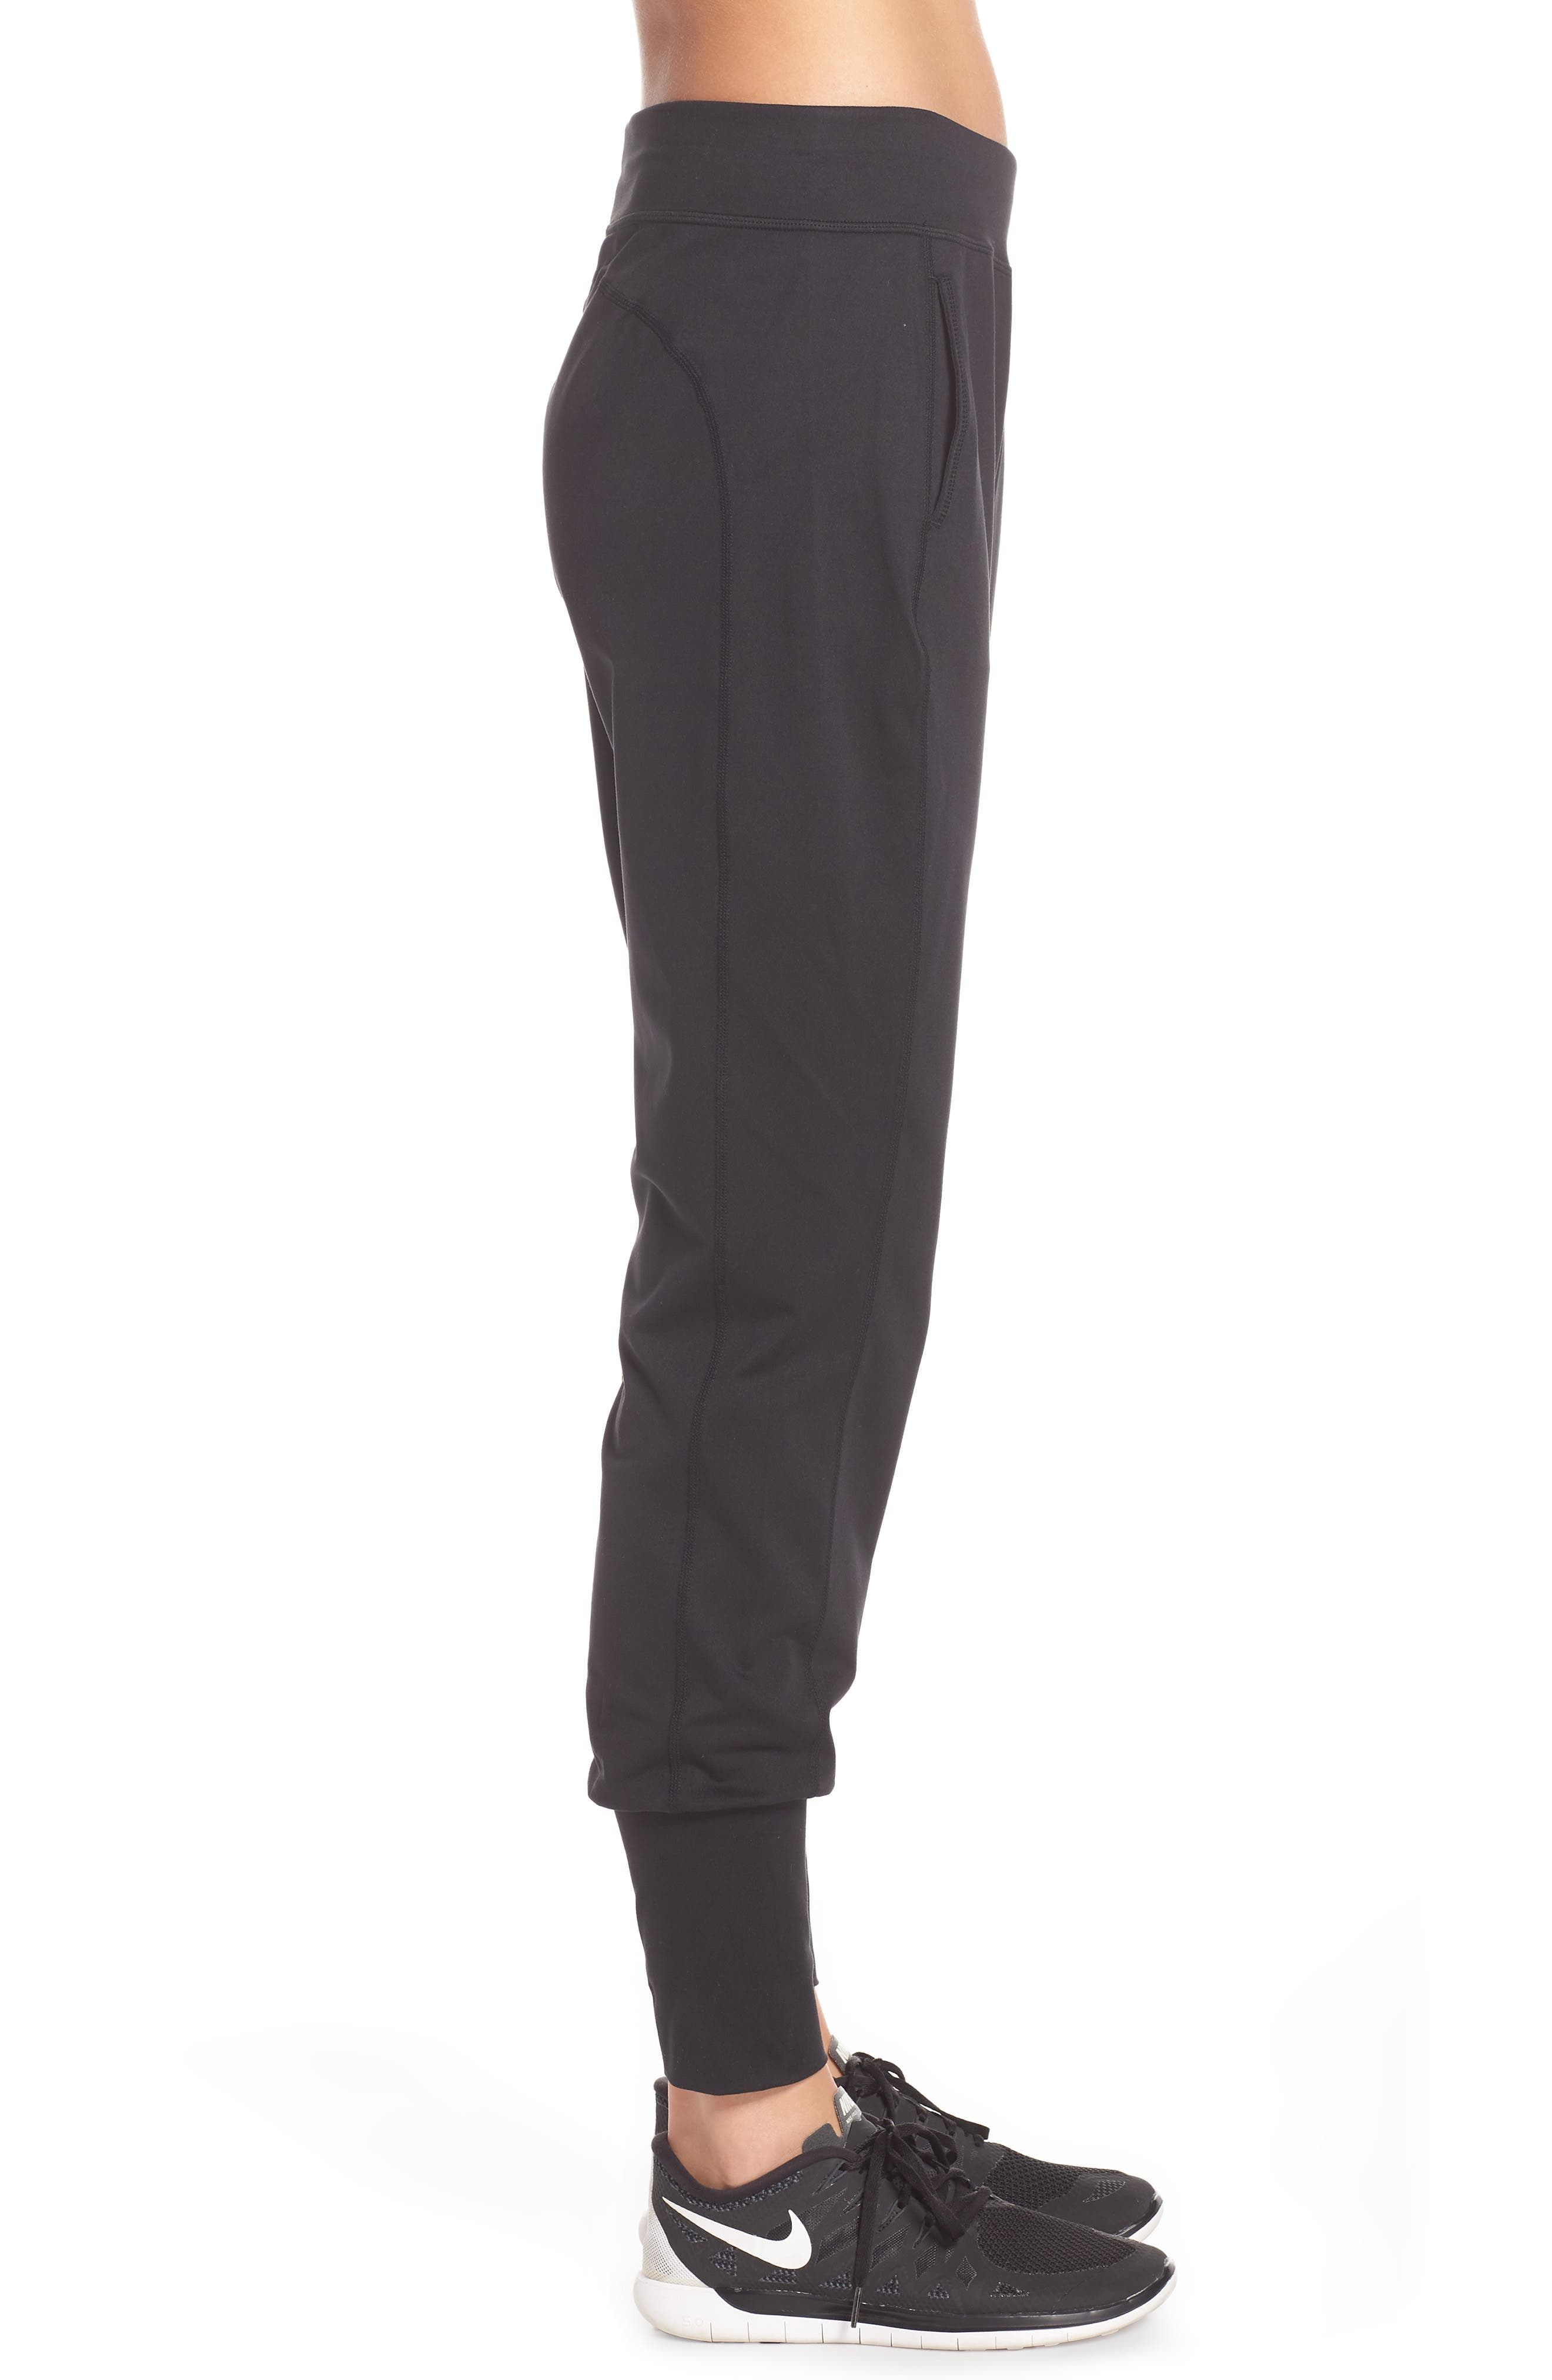 Garudasana Yoga Trousers,                             Alternate thumbnail 3, color,                             BLACK